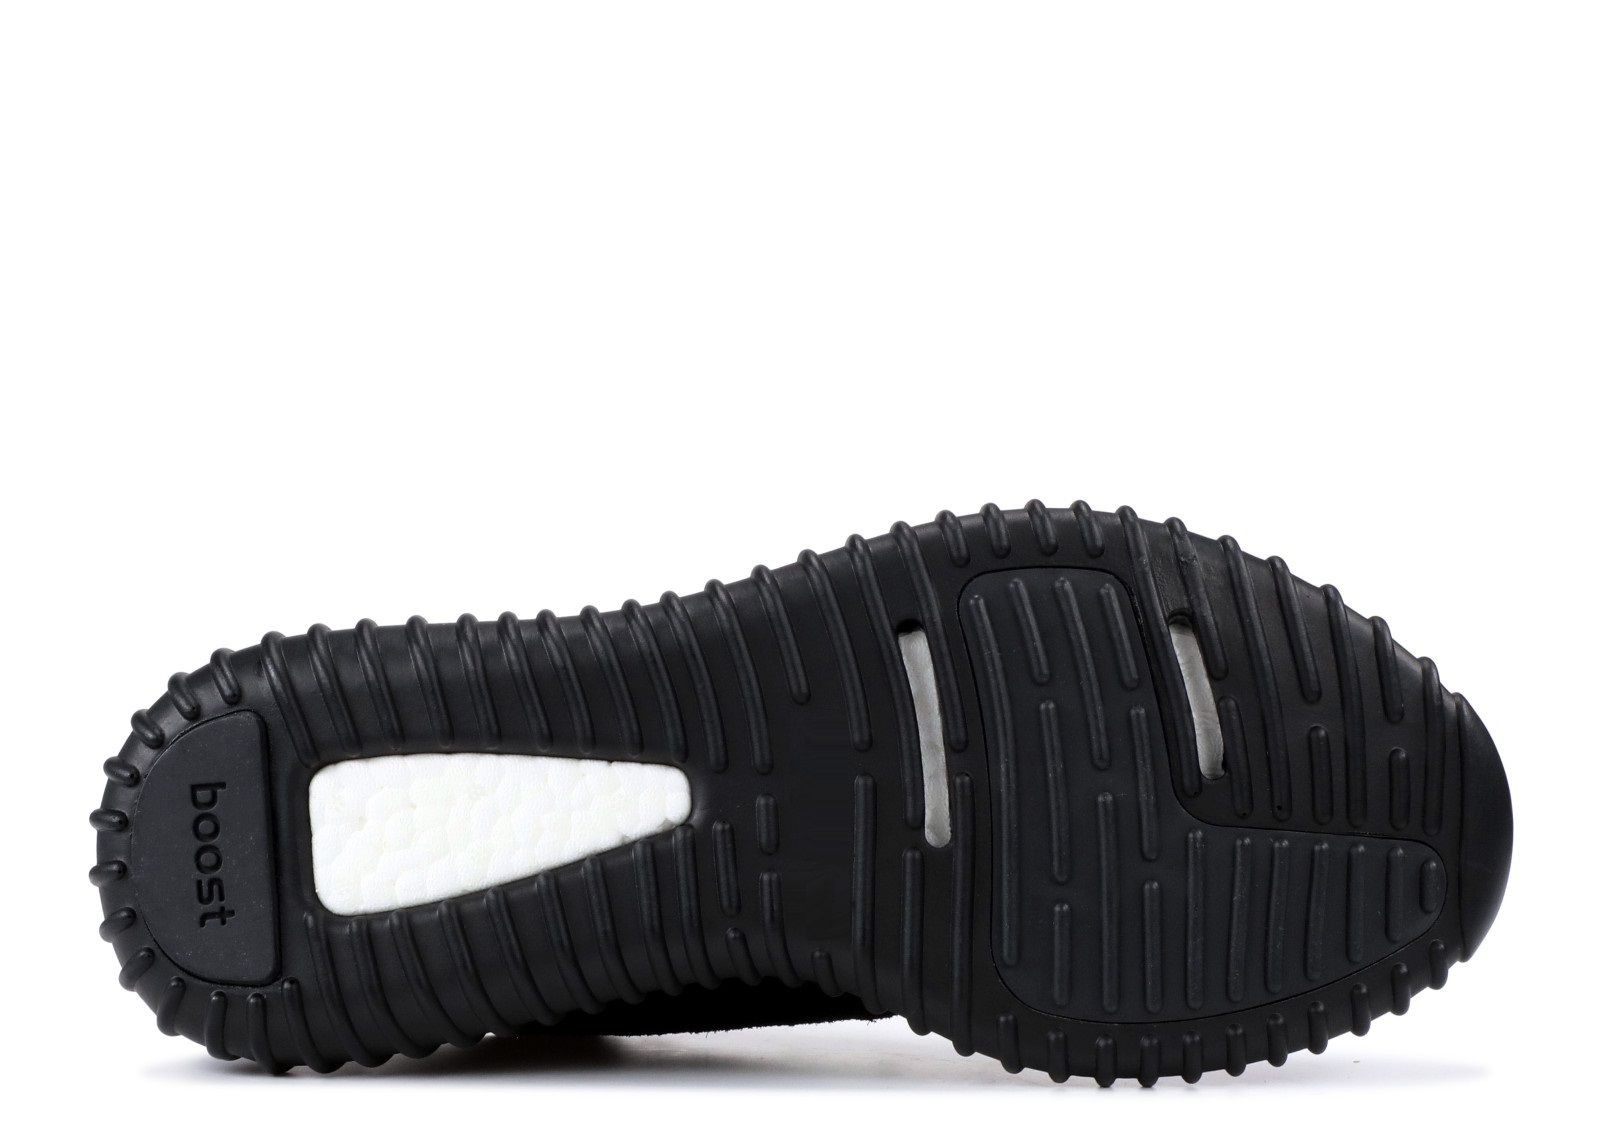 7c557a12e3fd Adidas Yeezy Boost 350 Pirate Black Running Shoes - Buy Adidas Yeezy ...